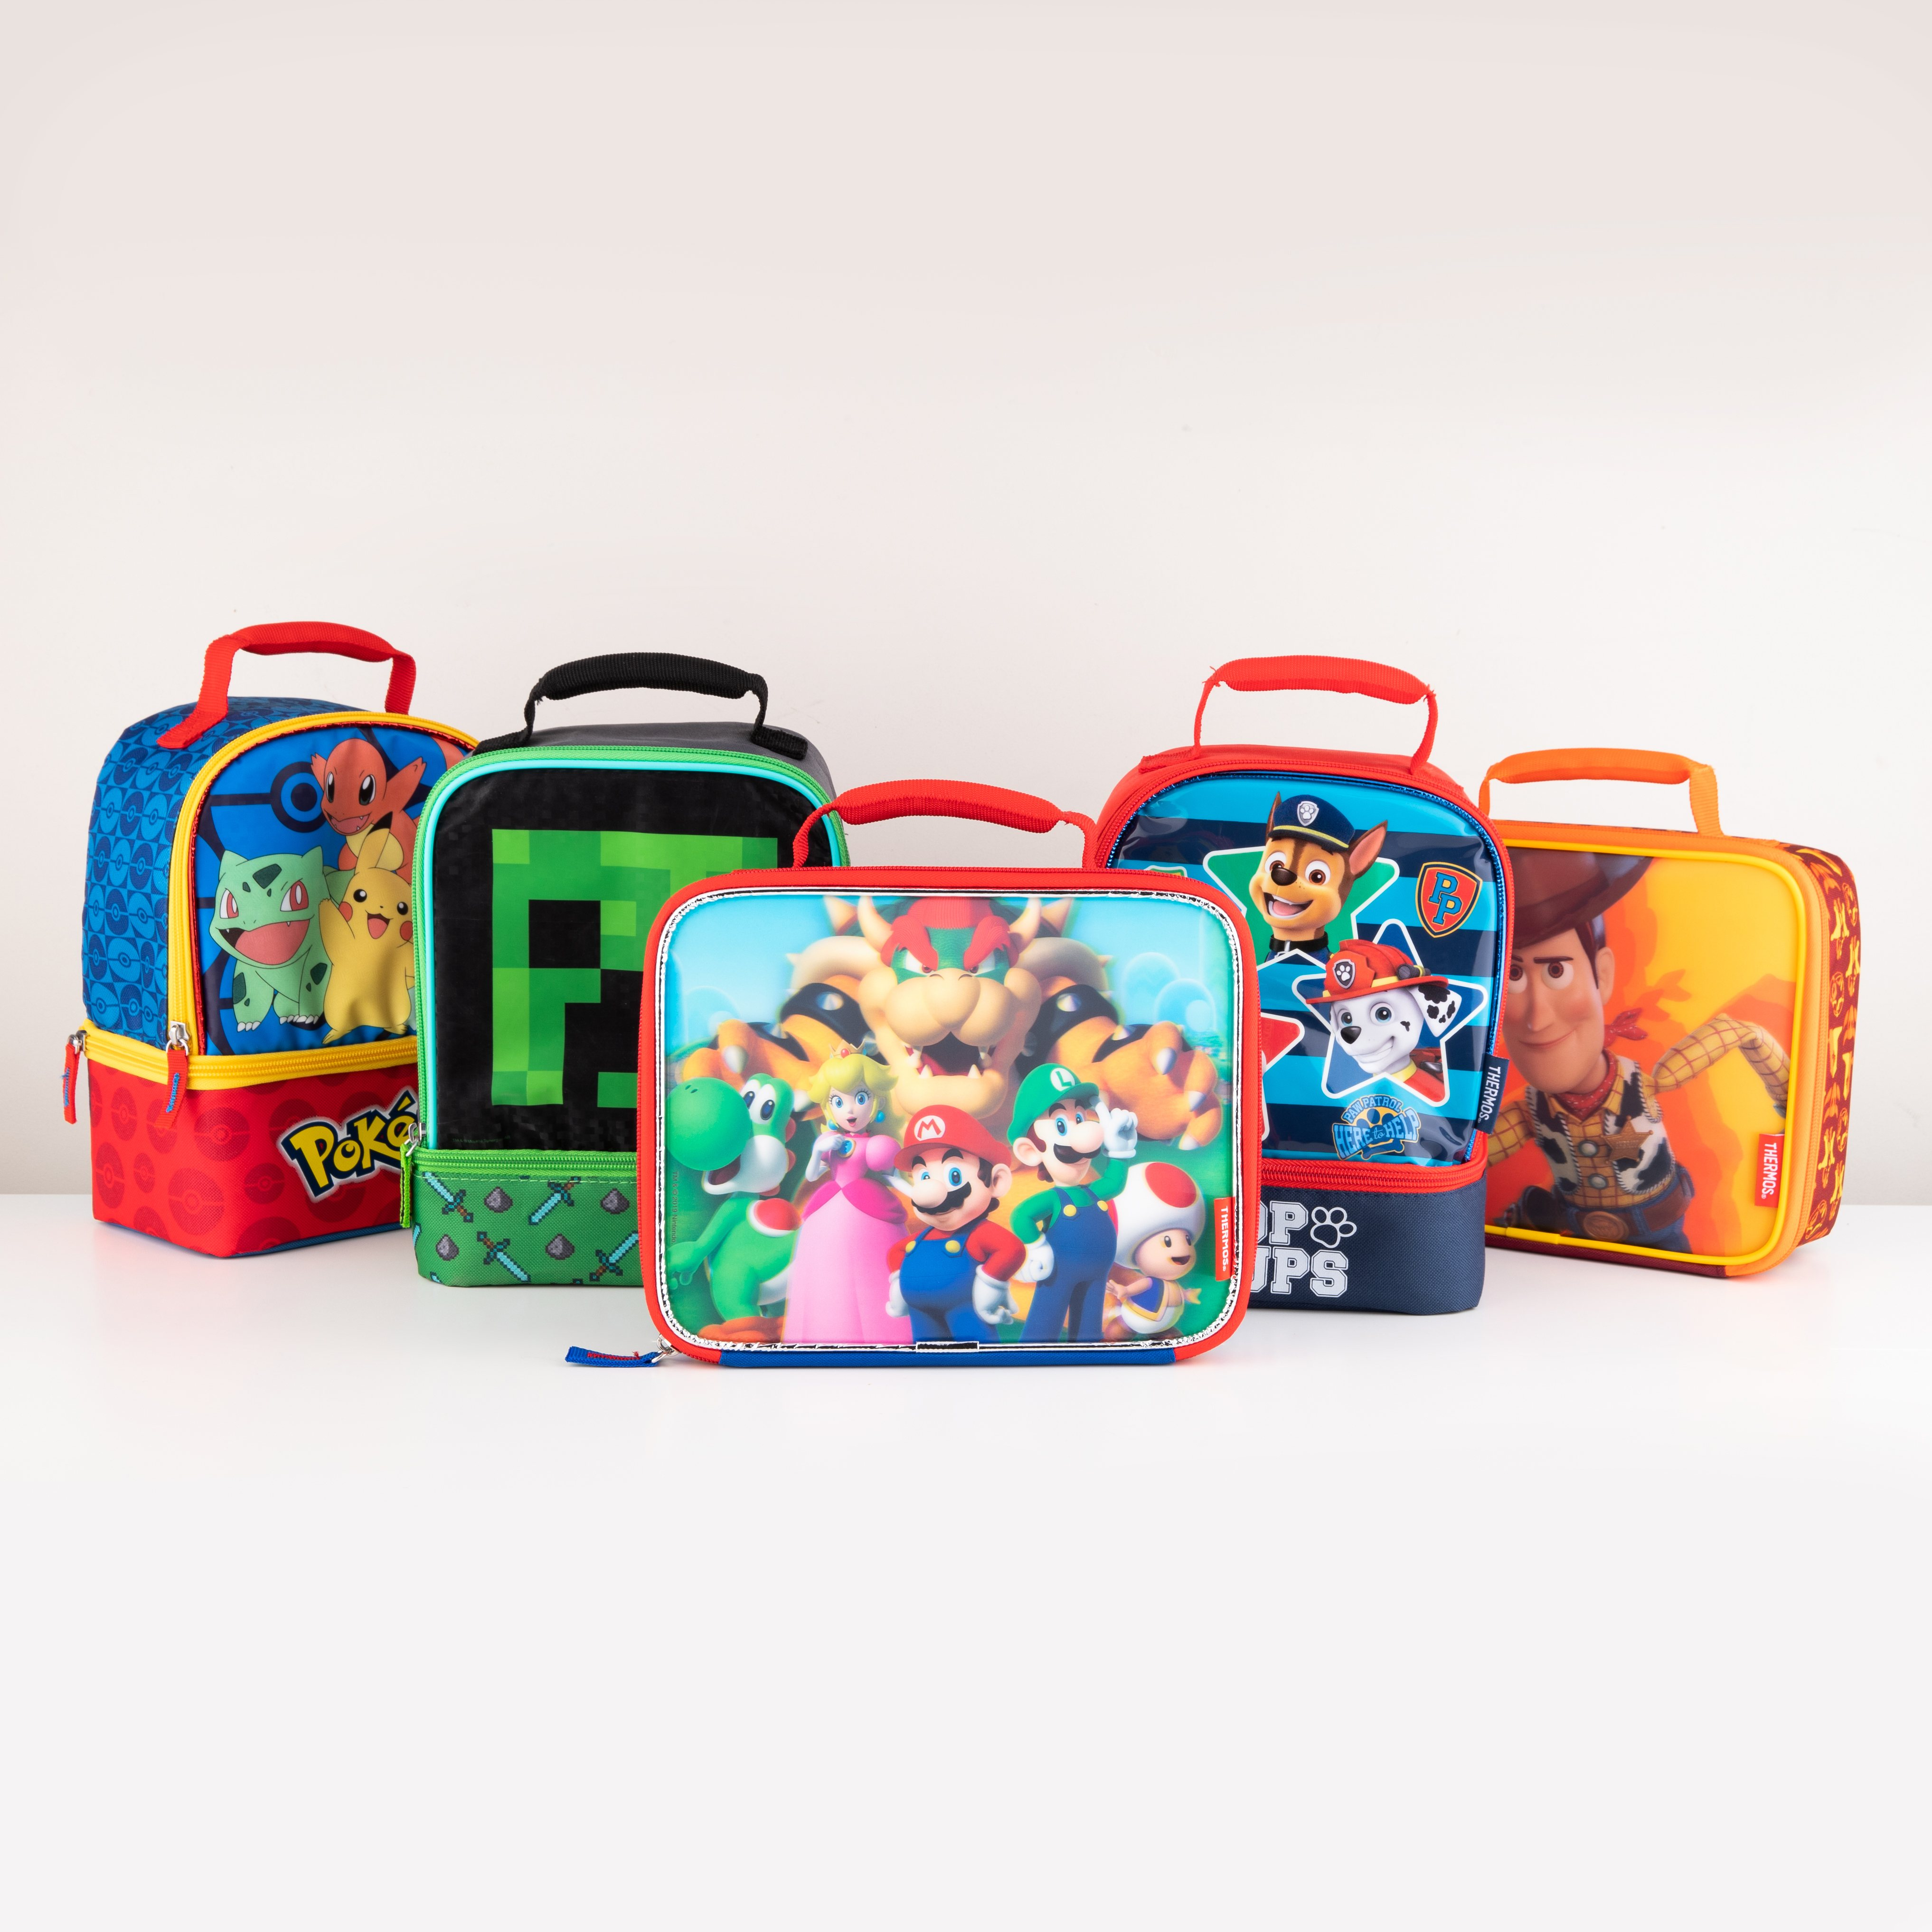 pokemon lunch bag, minecraft lunch bag, super mario lunch bag, paw patrol lunch bag, toy story lunch bag